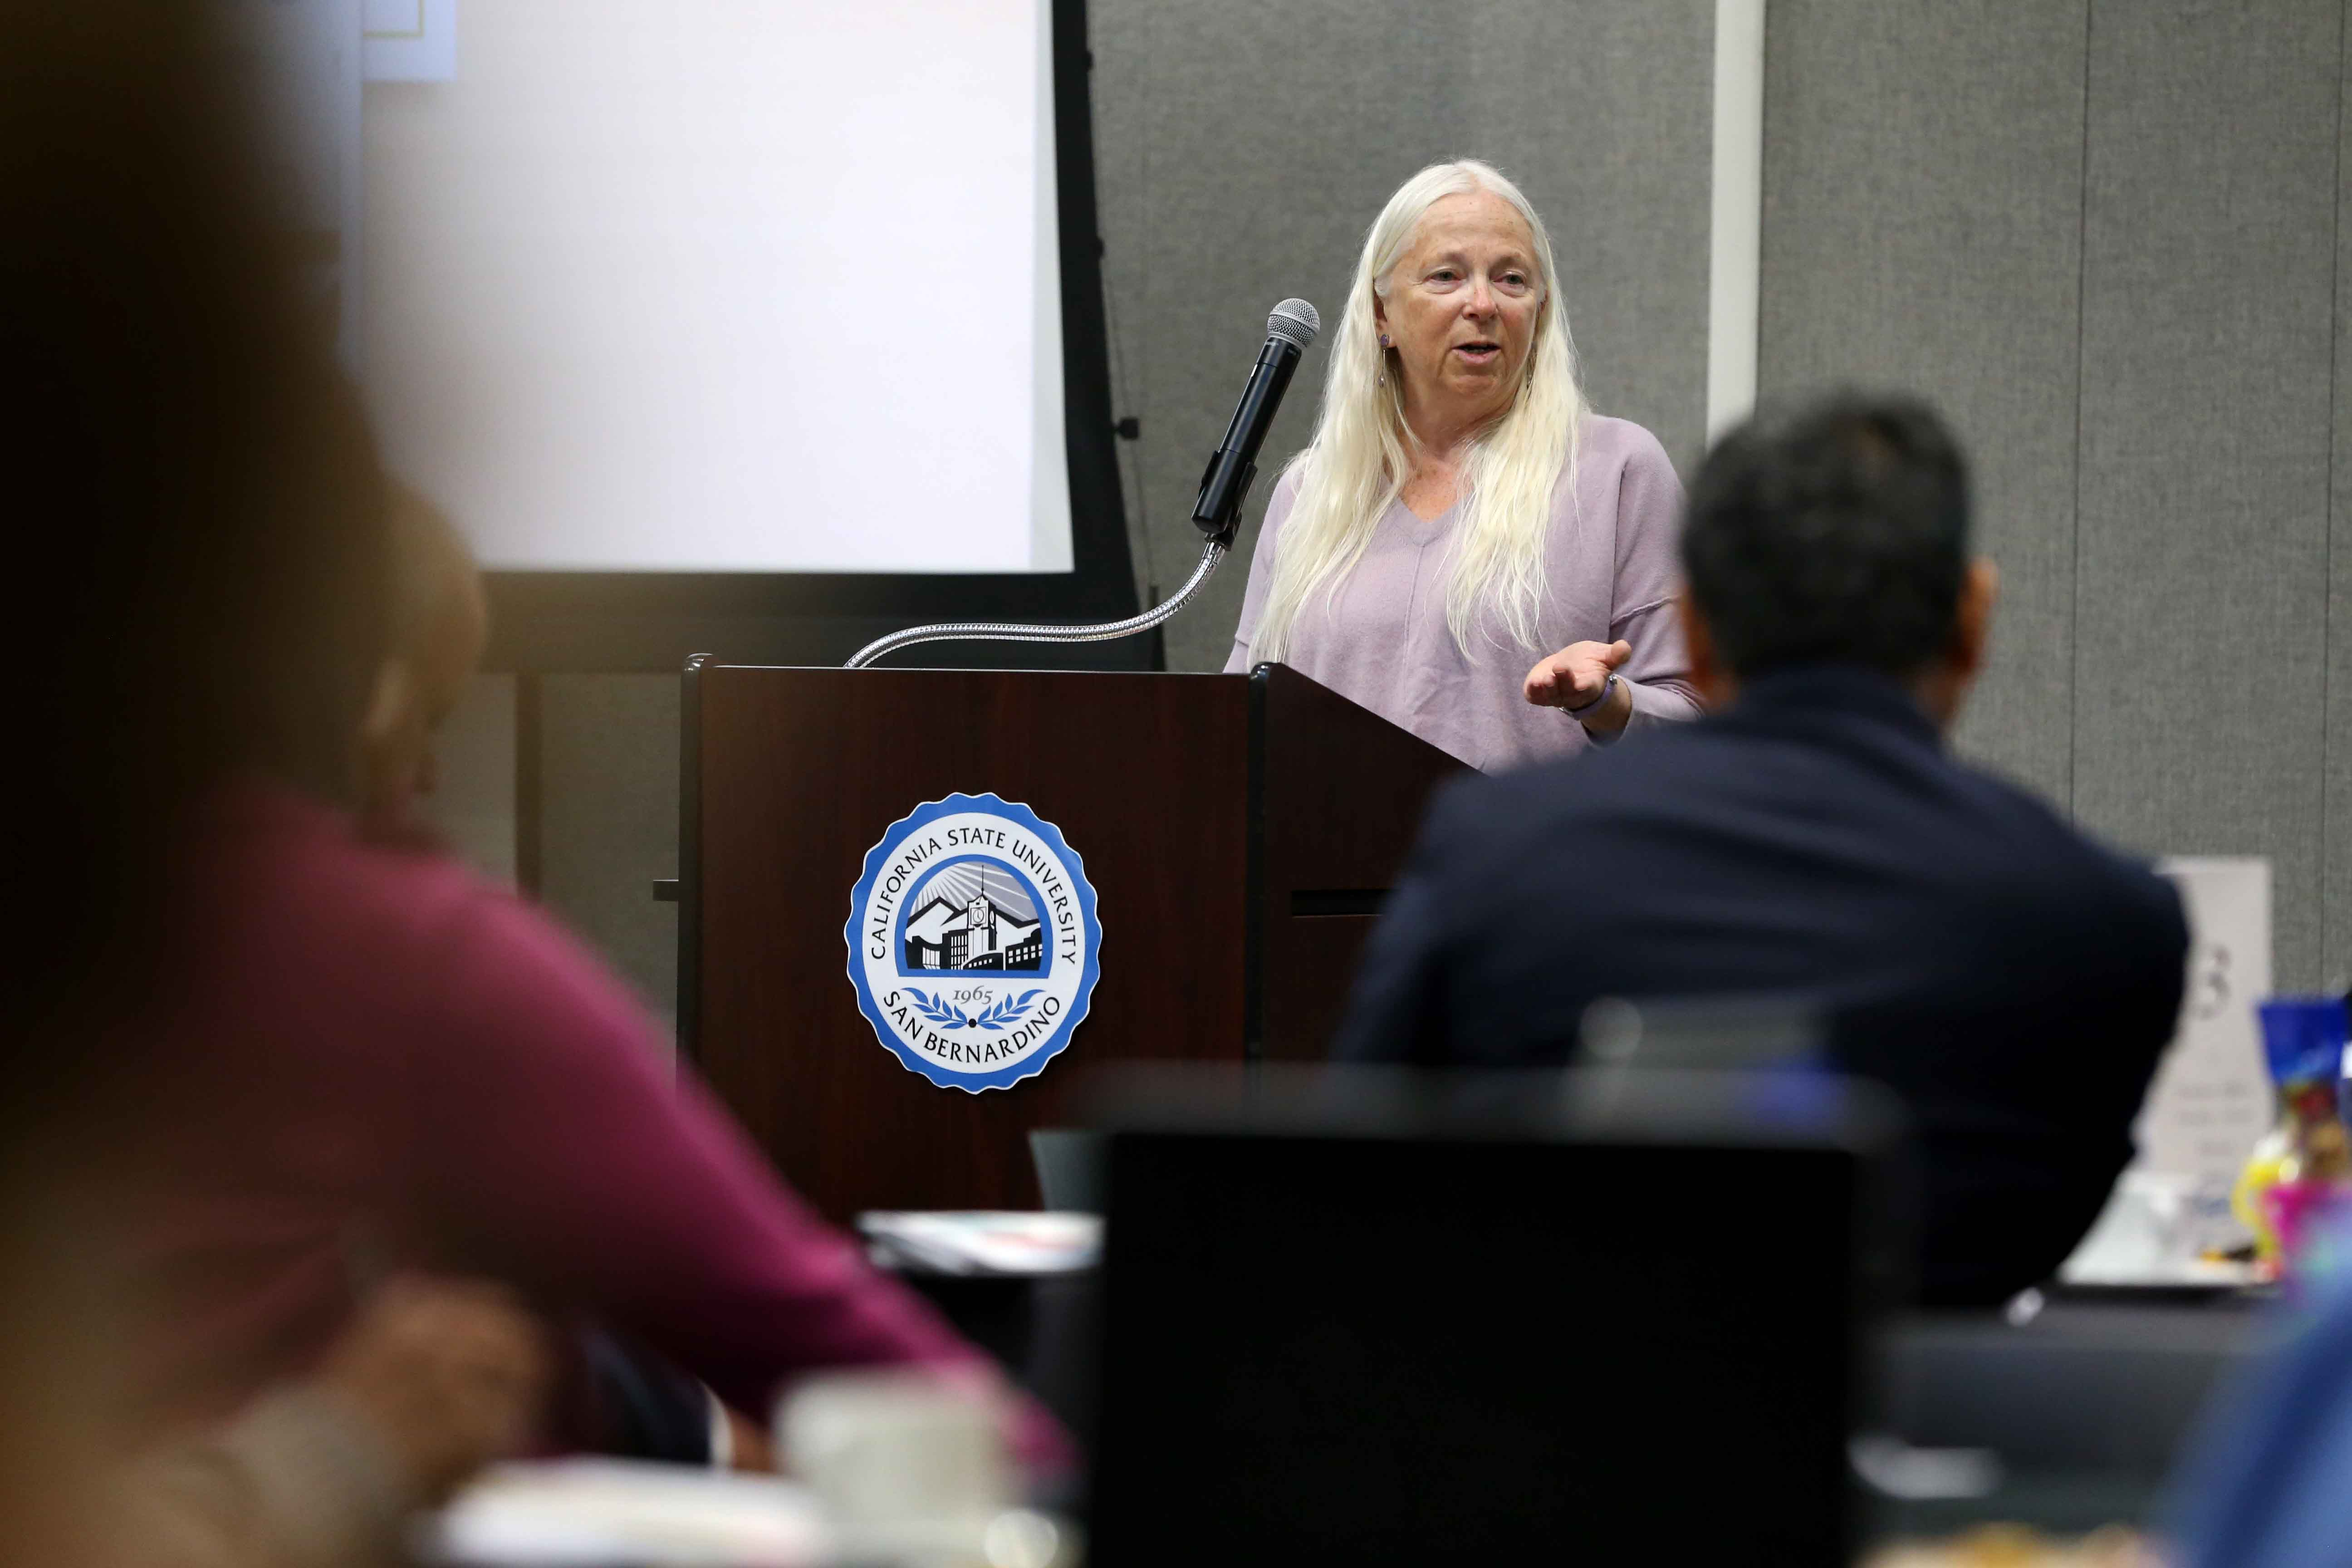 Karen Kolehmainen, a professor of physics and chair of the CSUSB faculty senate, also welcomed the group, reminding faculty members what brought them to the university.